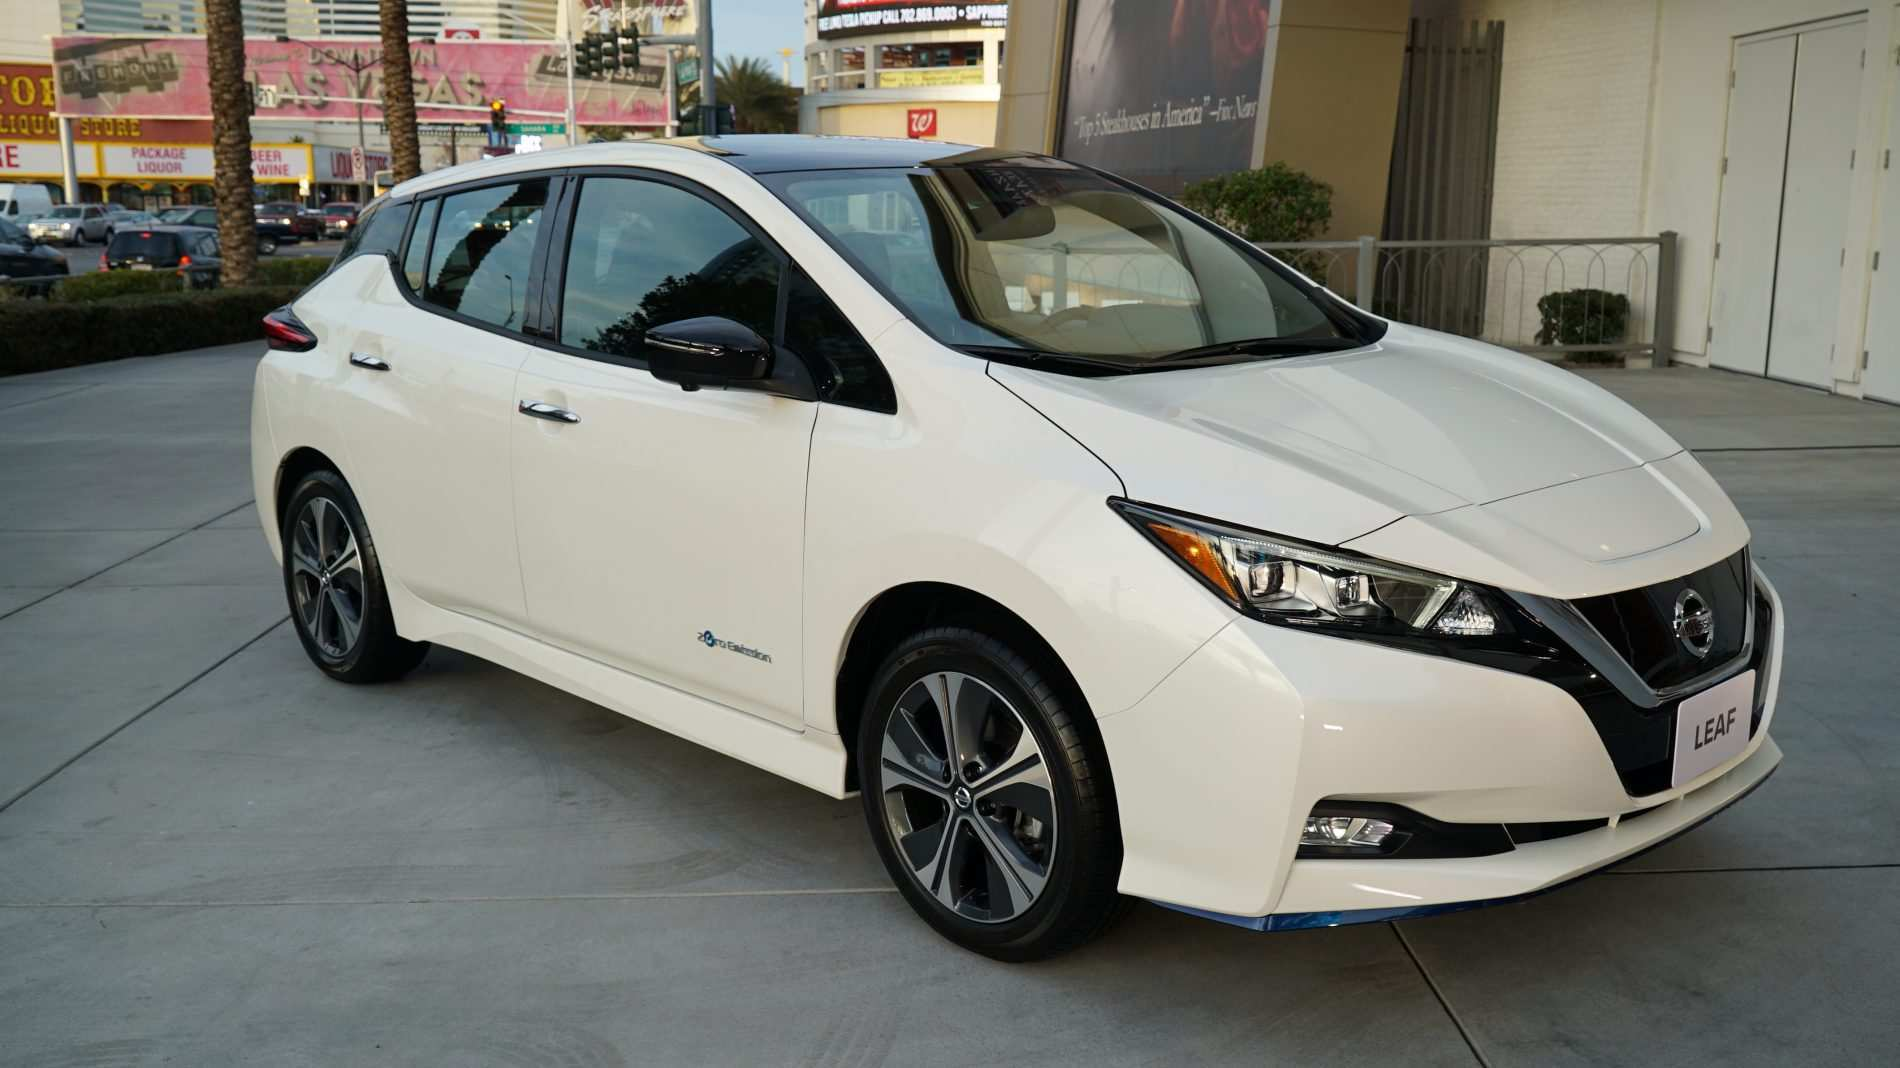 27 Great 2020 Nissan Leaf E Plus Specs and Review with 2020 Nissan Leaf E Plus